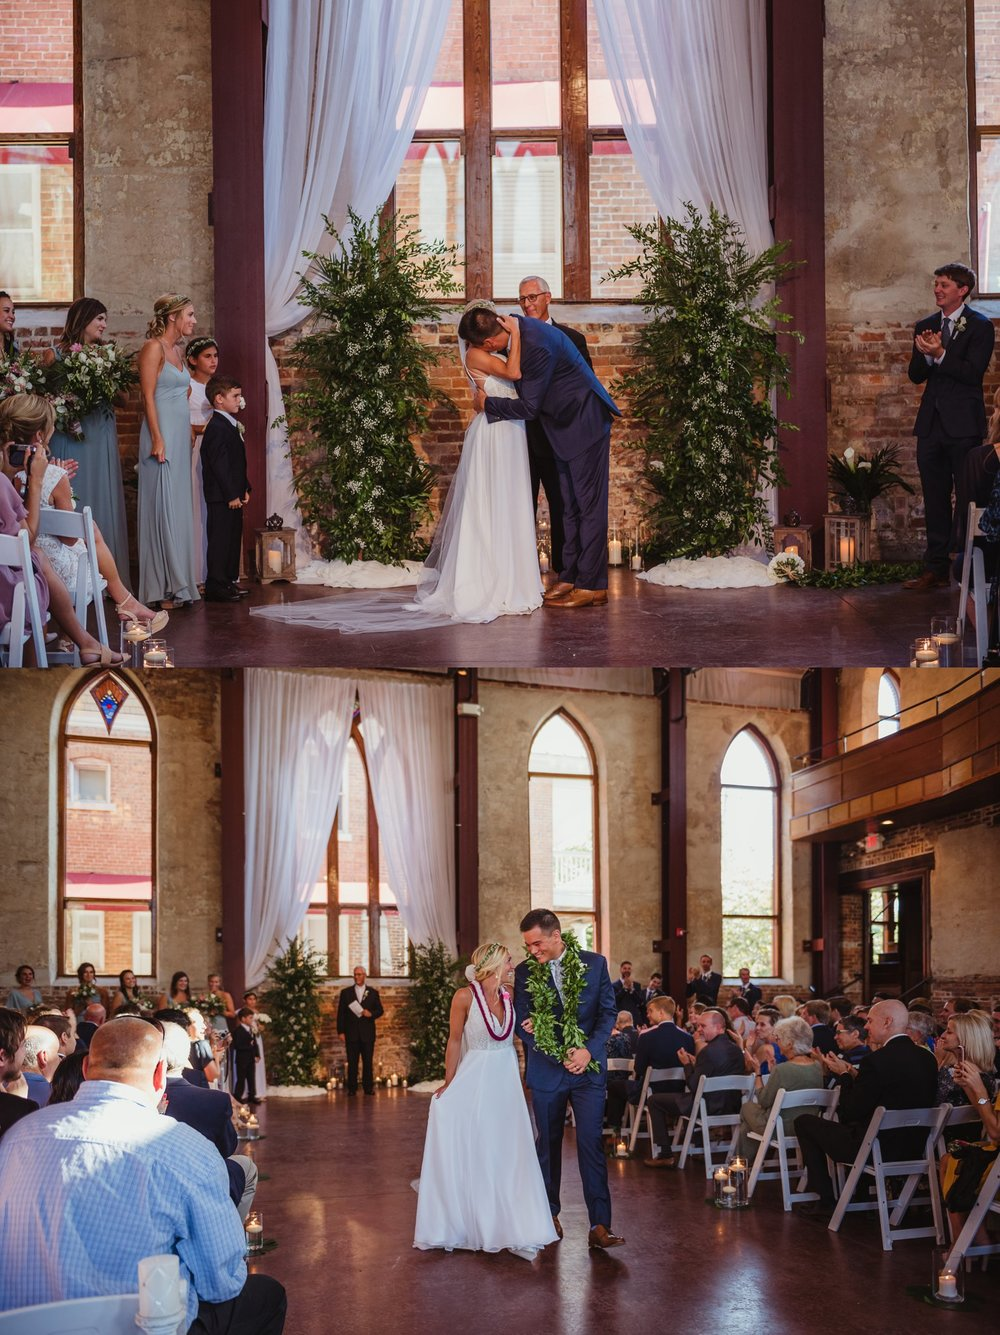 The bride and groom walk down the aisle after their wedding ceremony at the Brooklyn Arts Center in Wilmington, NC, photos by Rose Trail Images.